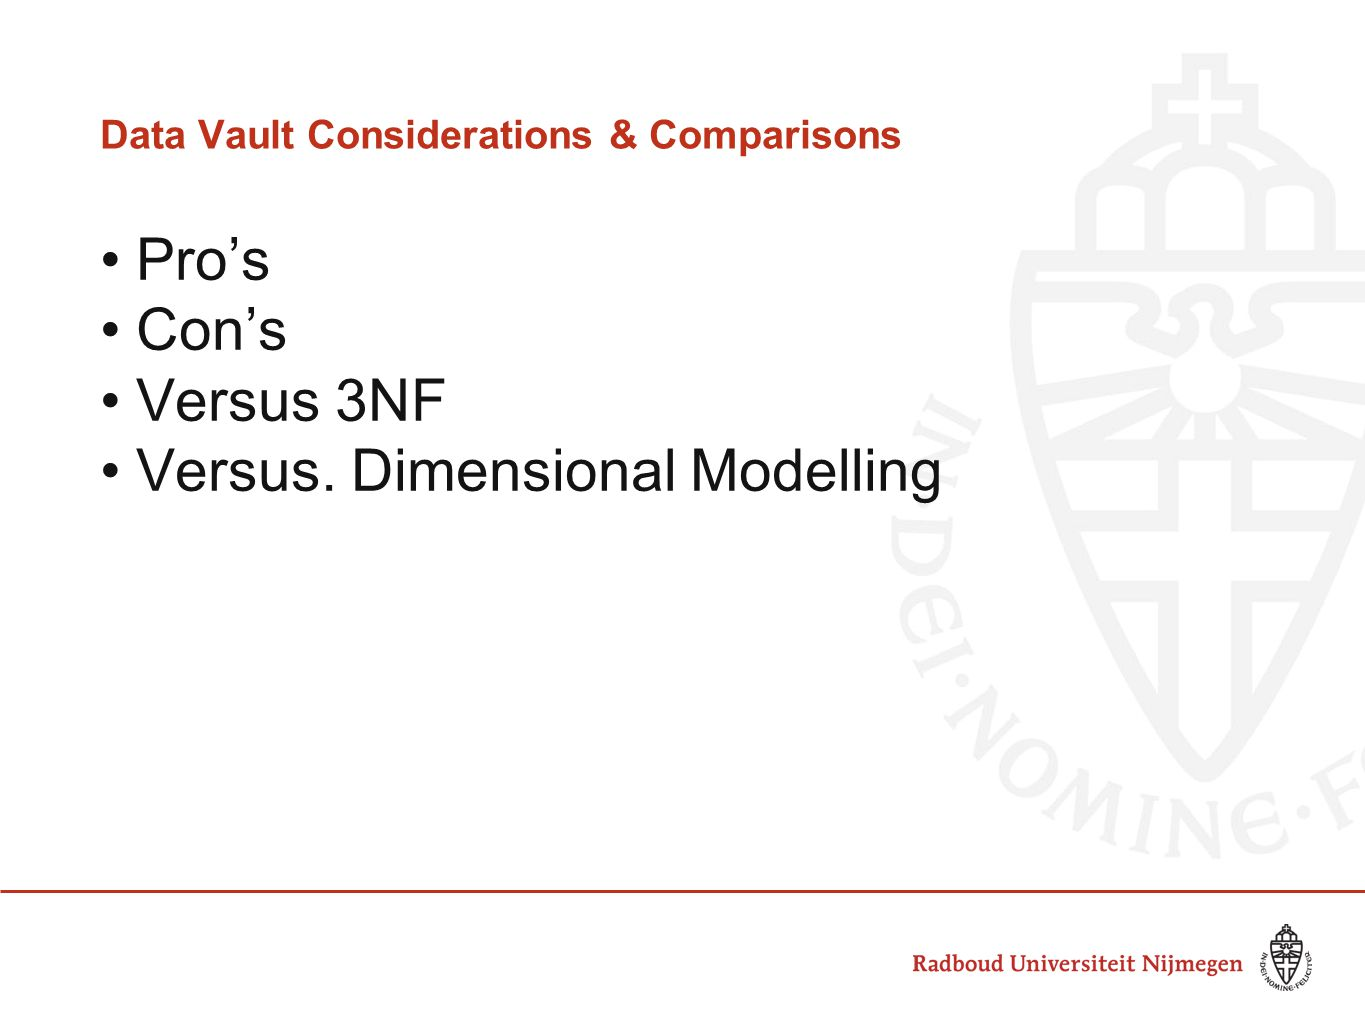 Data Vault Considerations & Comparisons